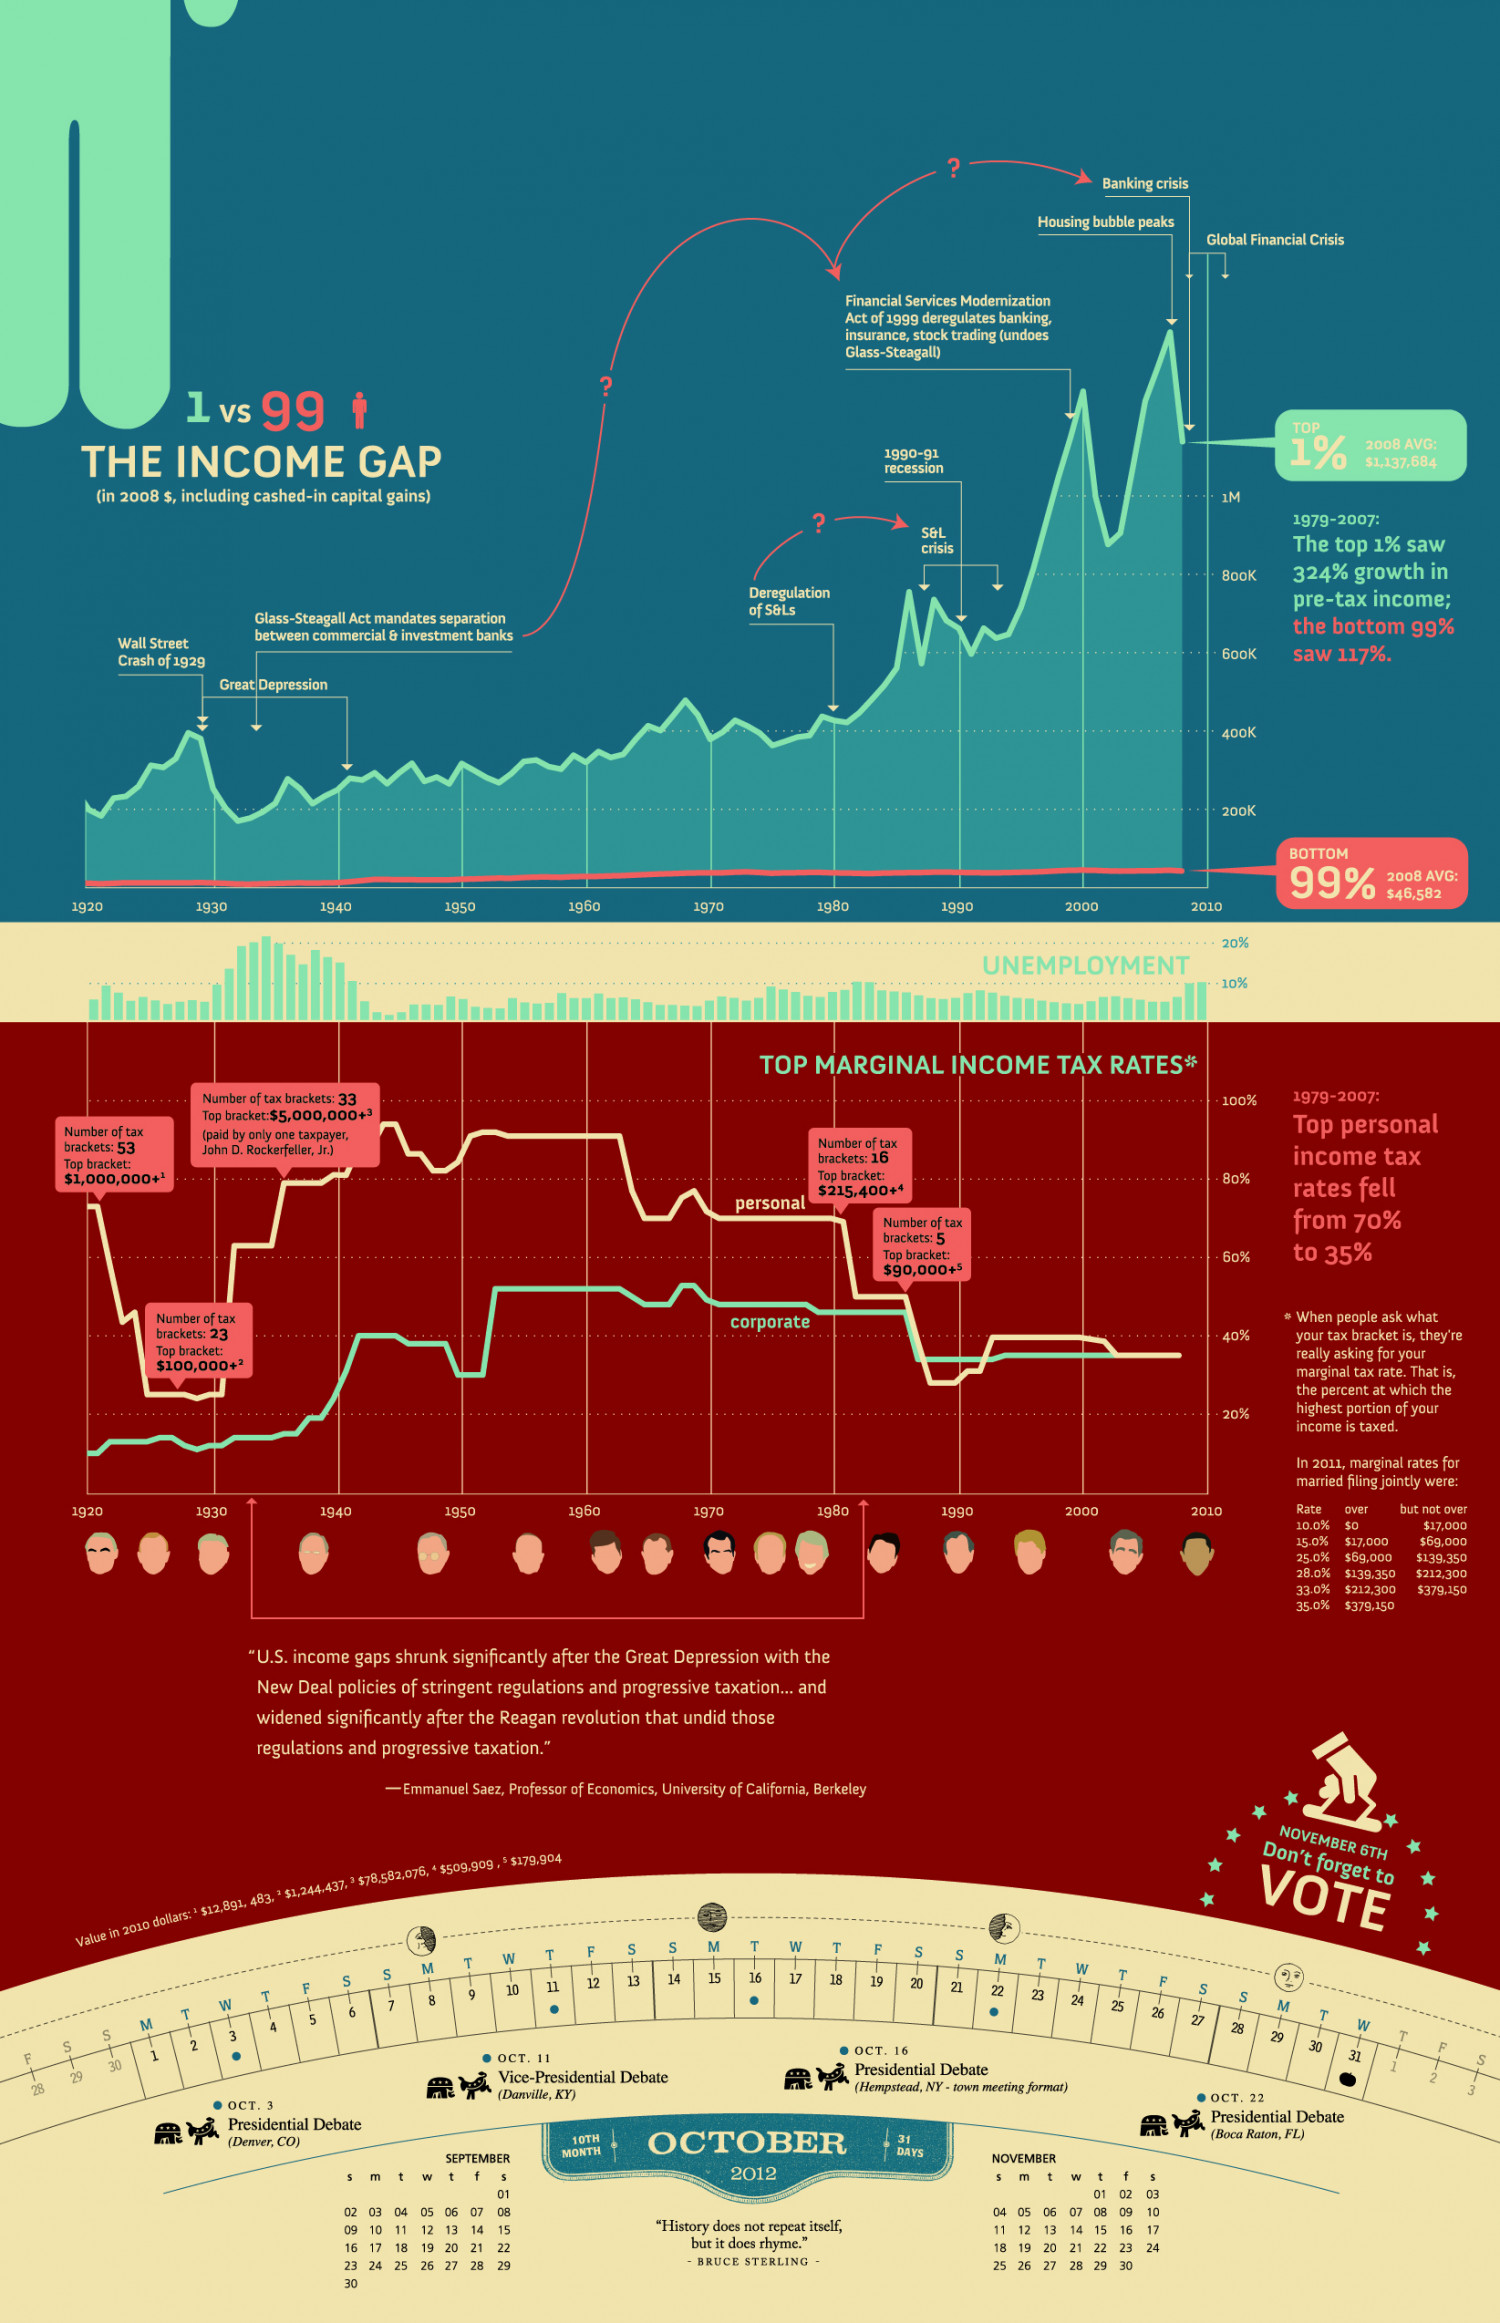 The Income Gap, Unemployment and Tax Rates Infographic